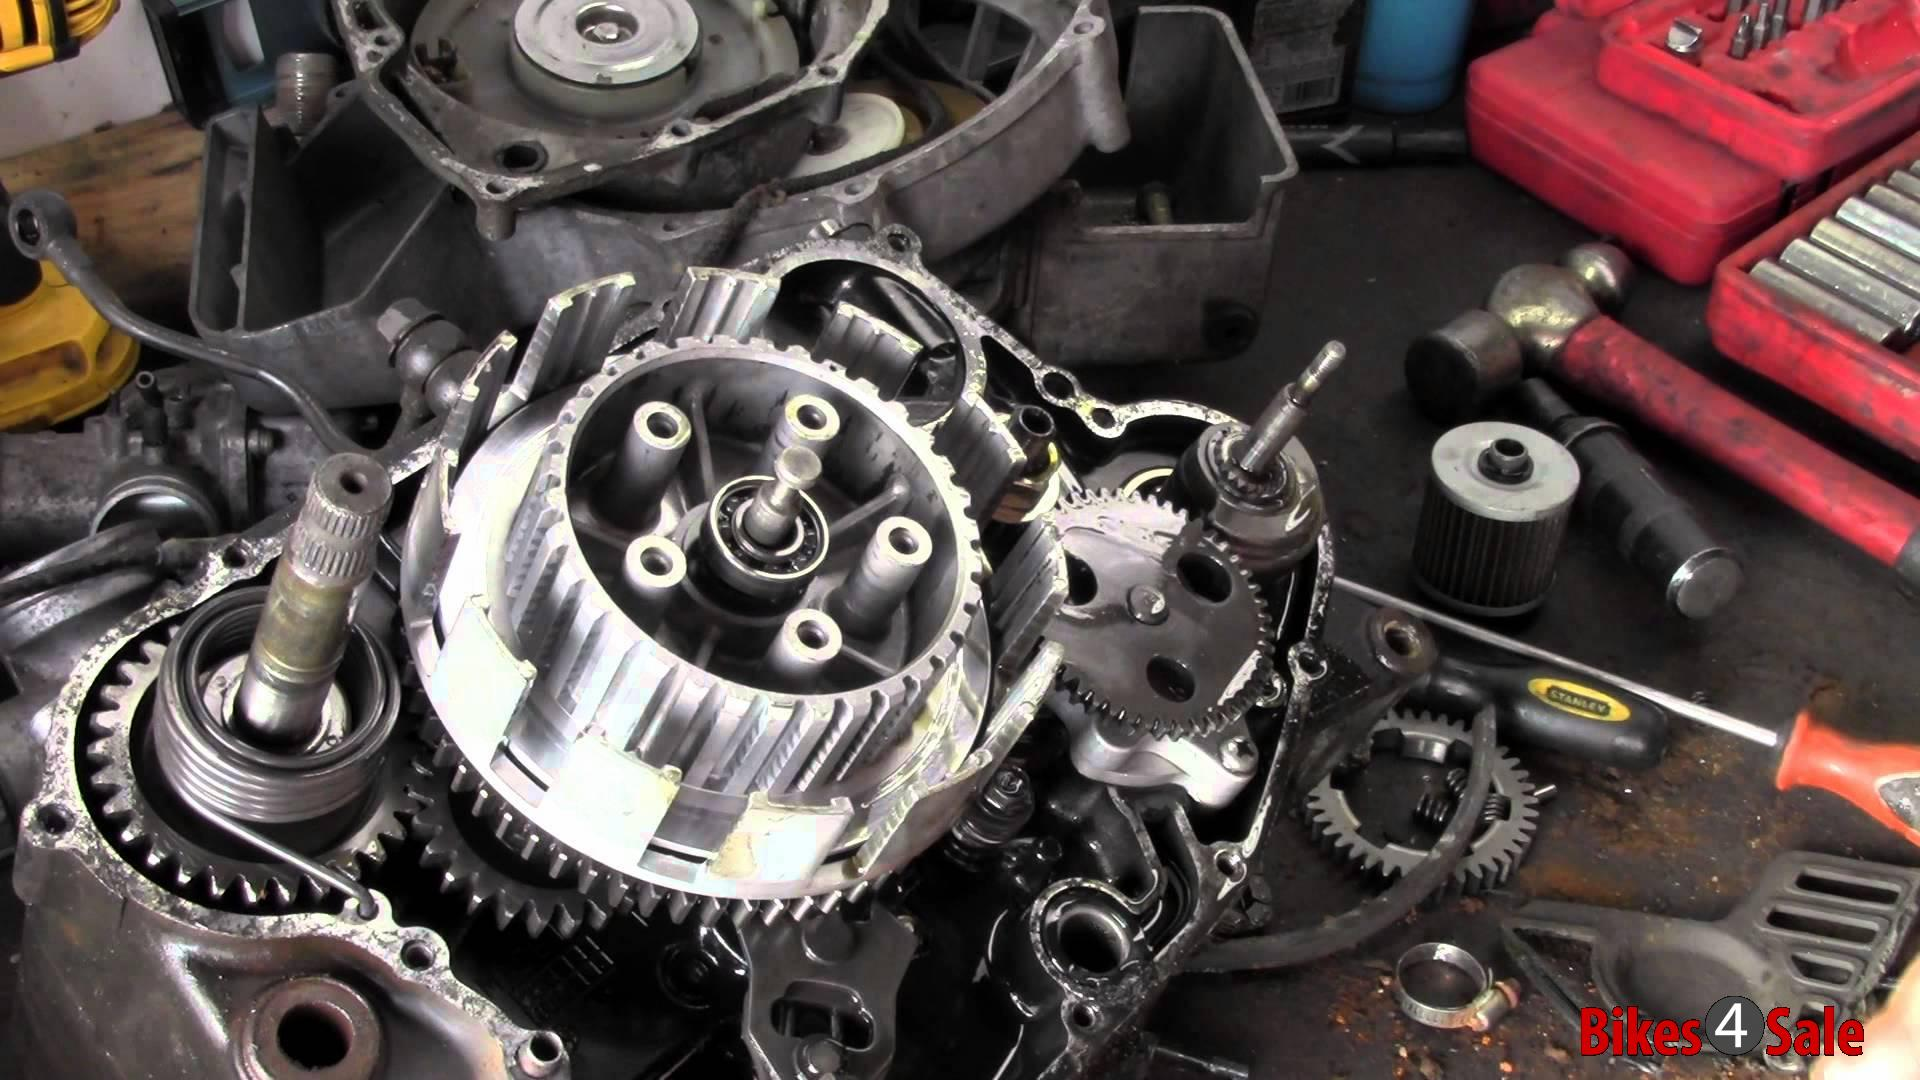 Images of Motorcycle Clutch Slipping Symptoms - #rock-cafe